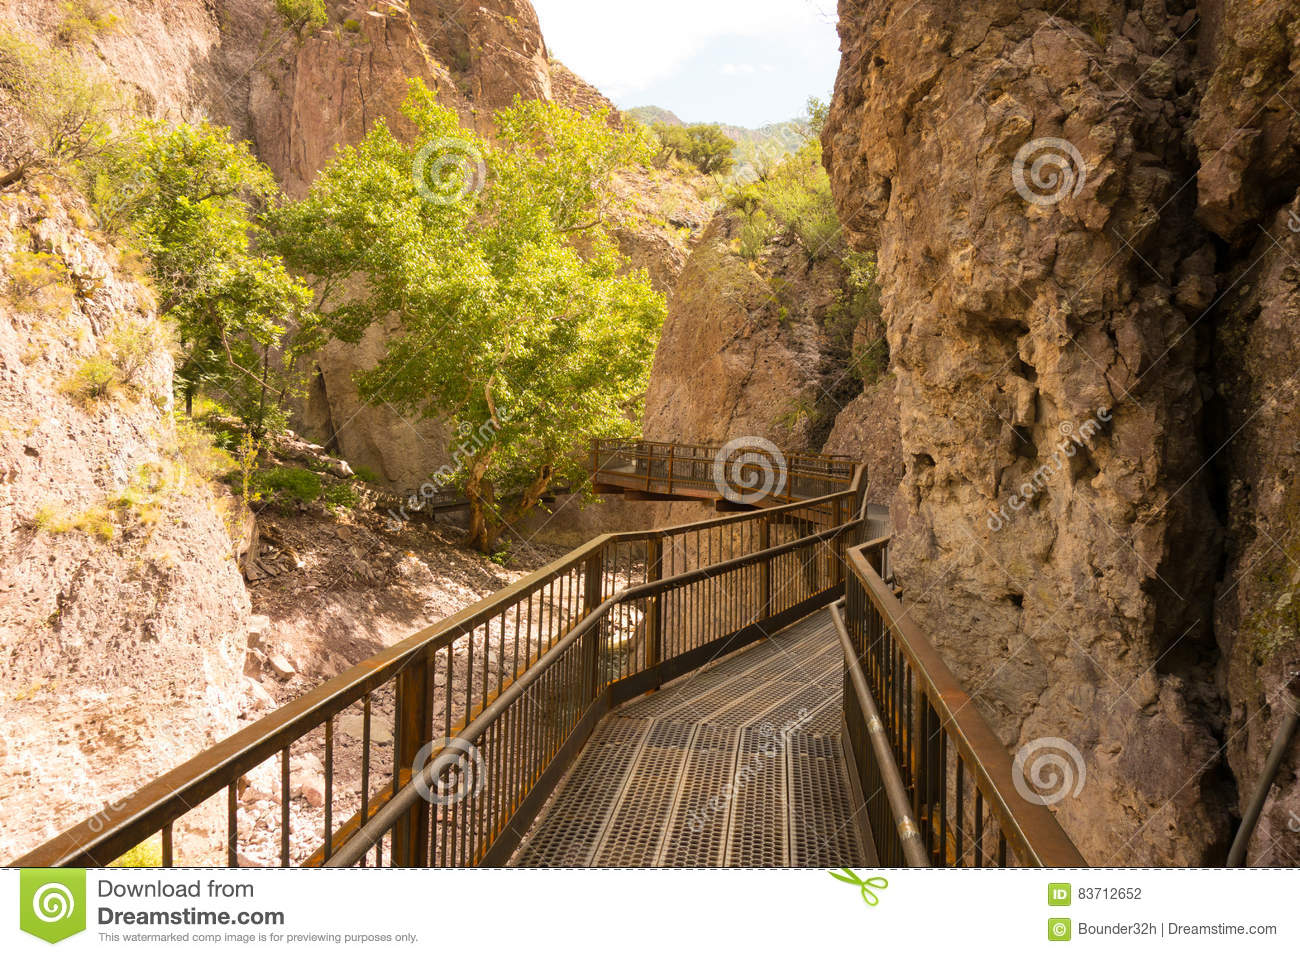 A Catwalk Across A Canyon In New Mexico Stock Photo